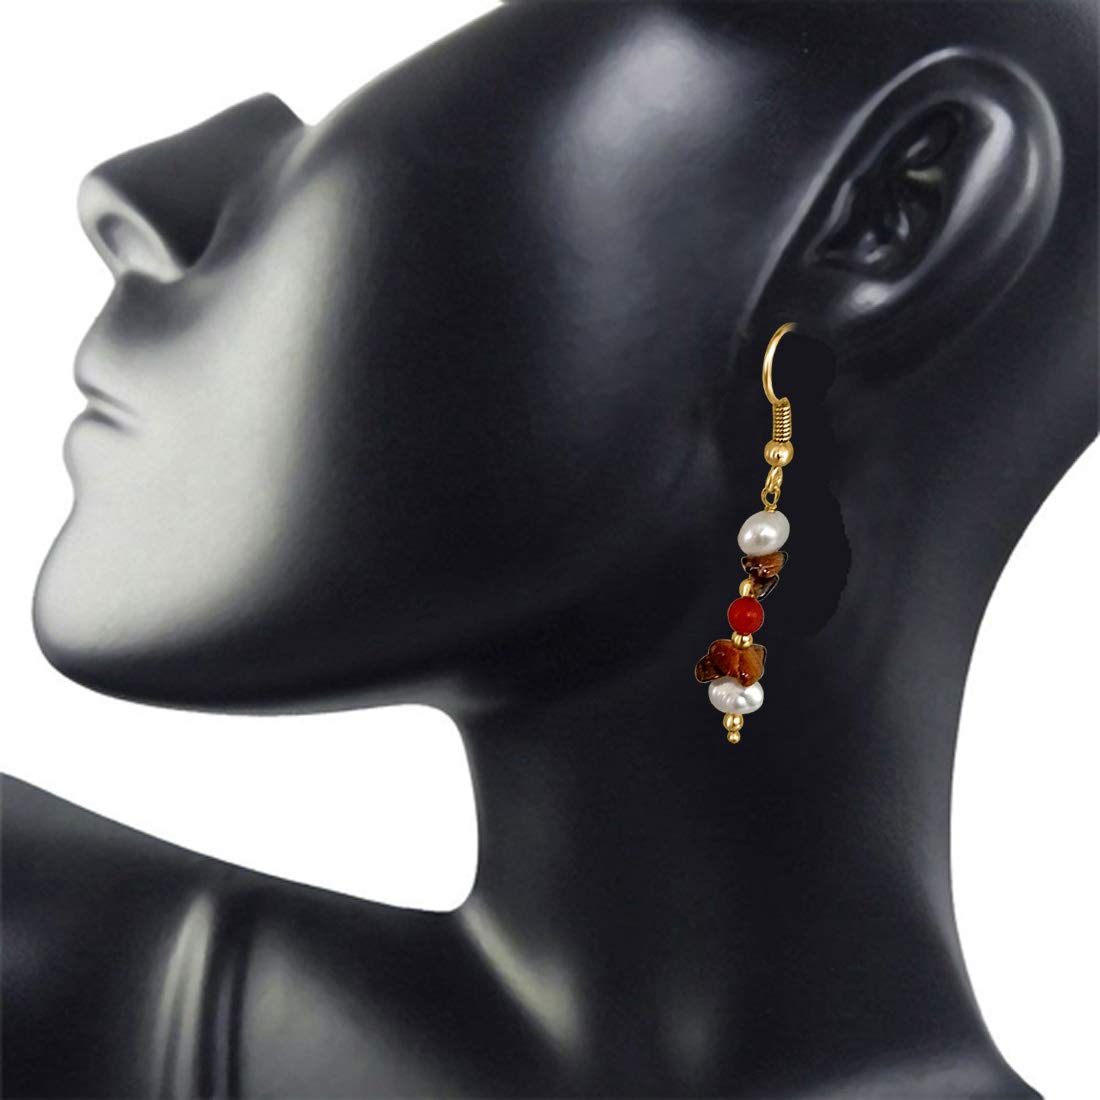 Real Tiger Eye, Coral & Pearl Hanging Earrings for Women (SE207)